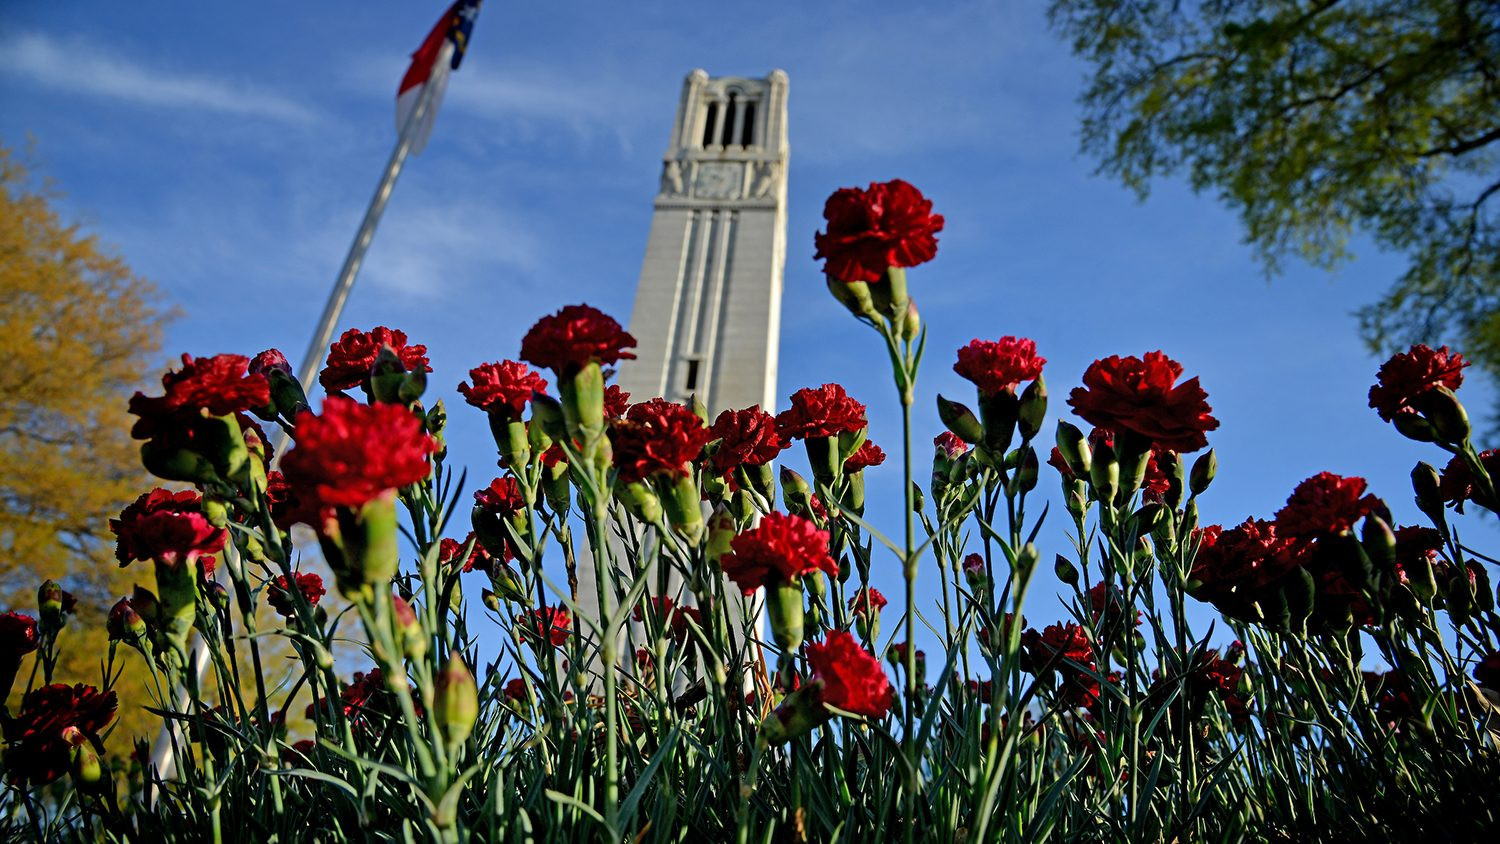 Red carnations in the foreground with the Belltower in the background.